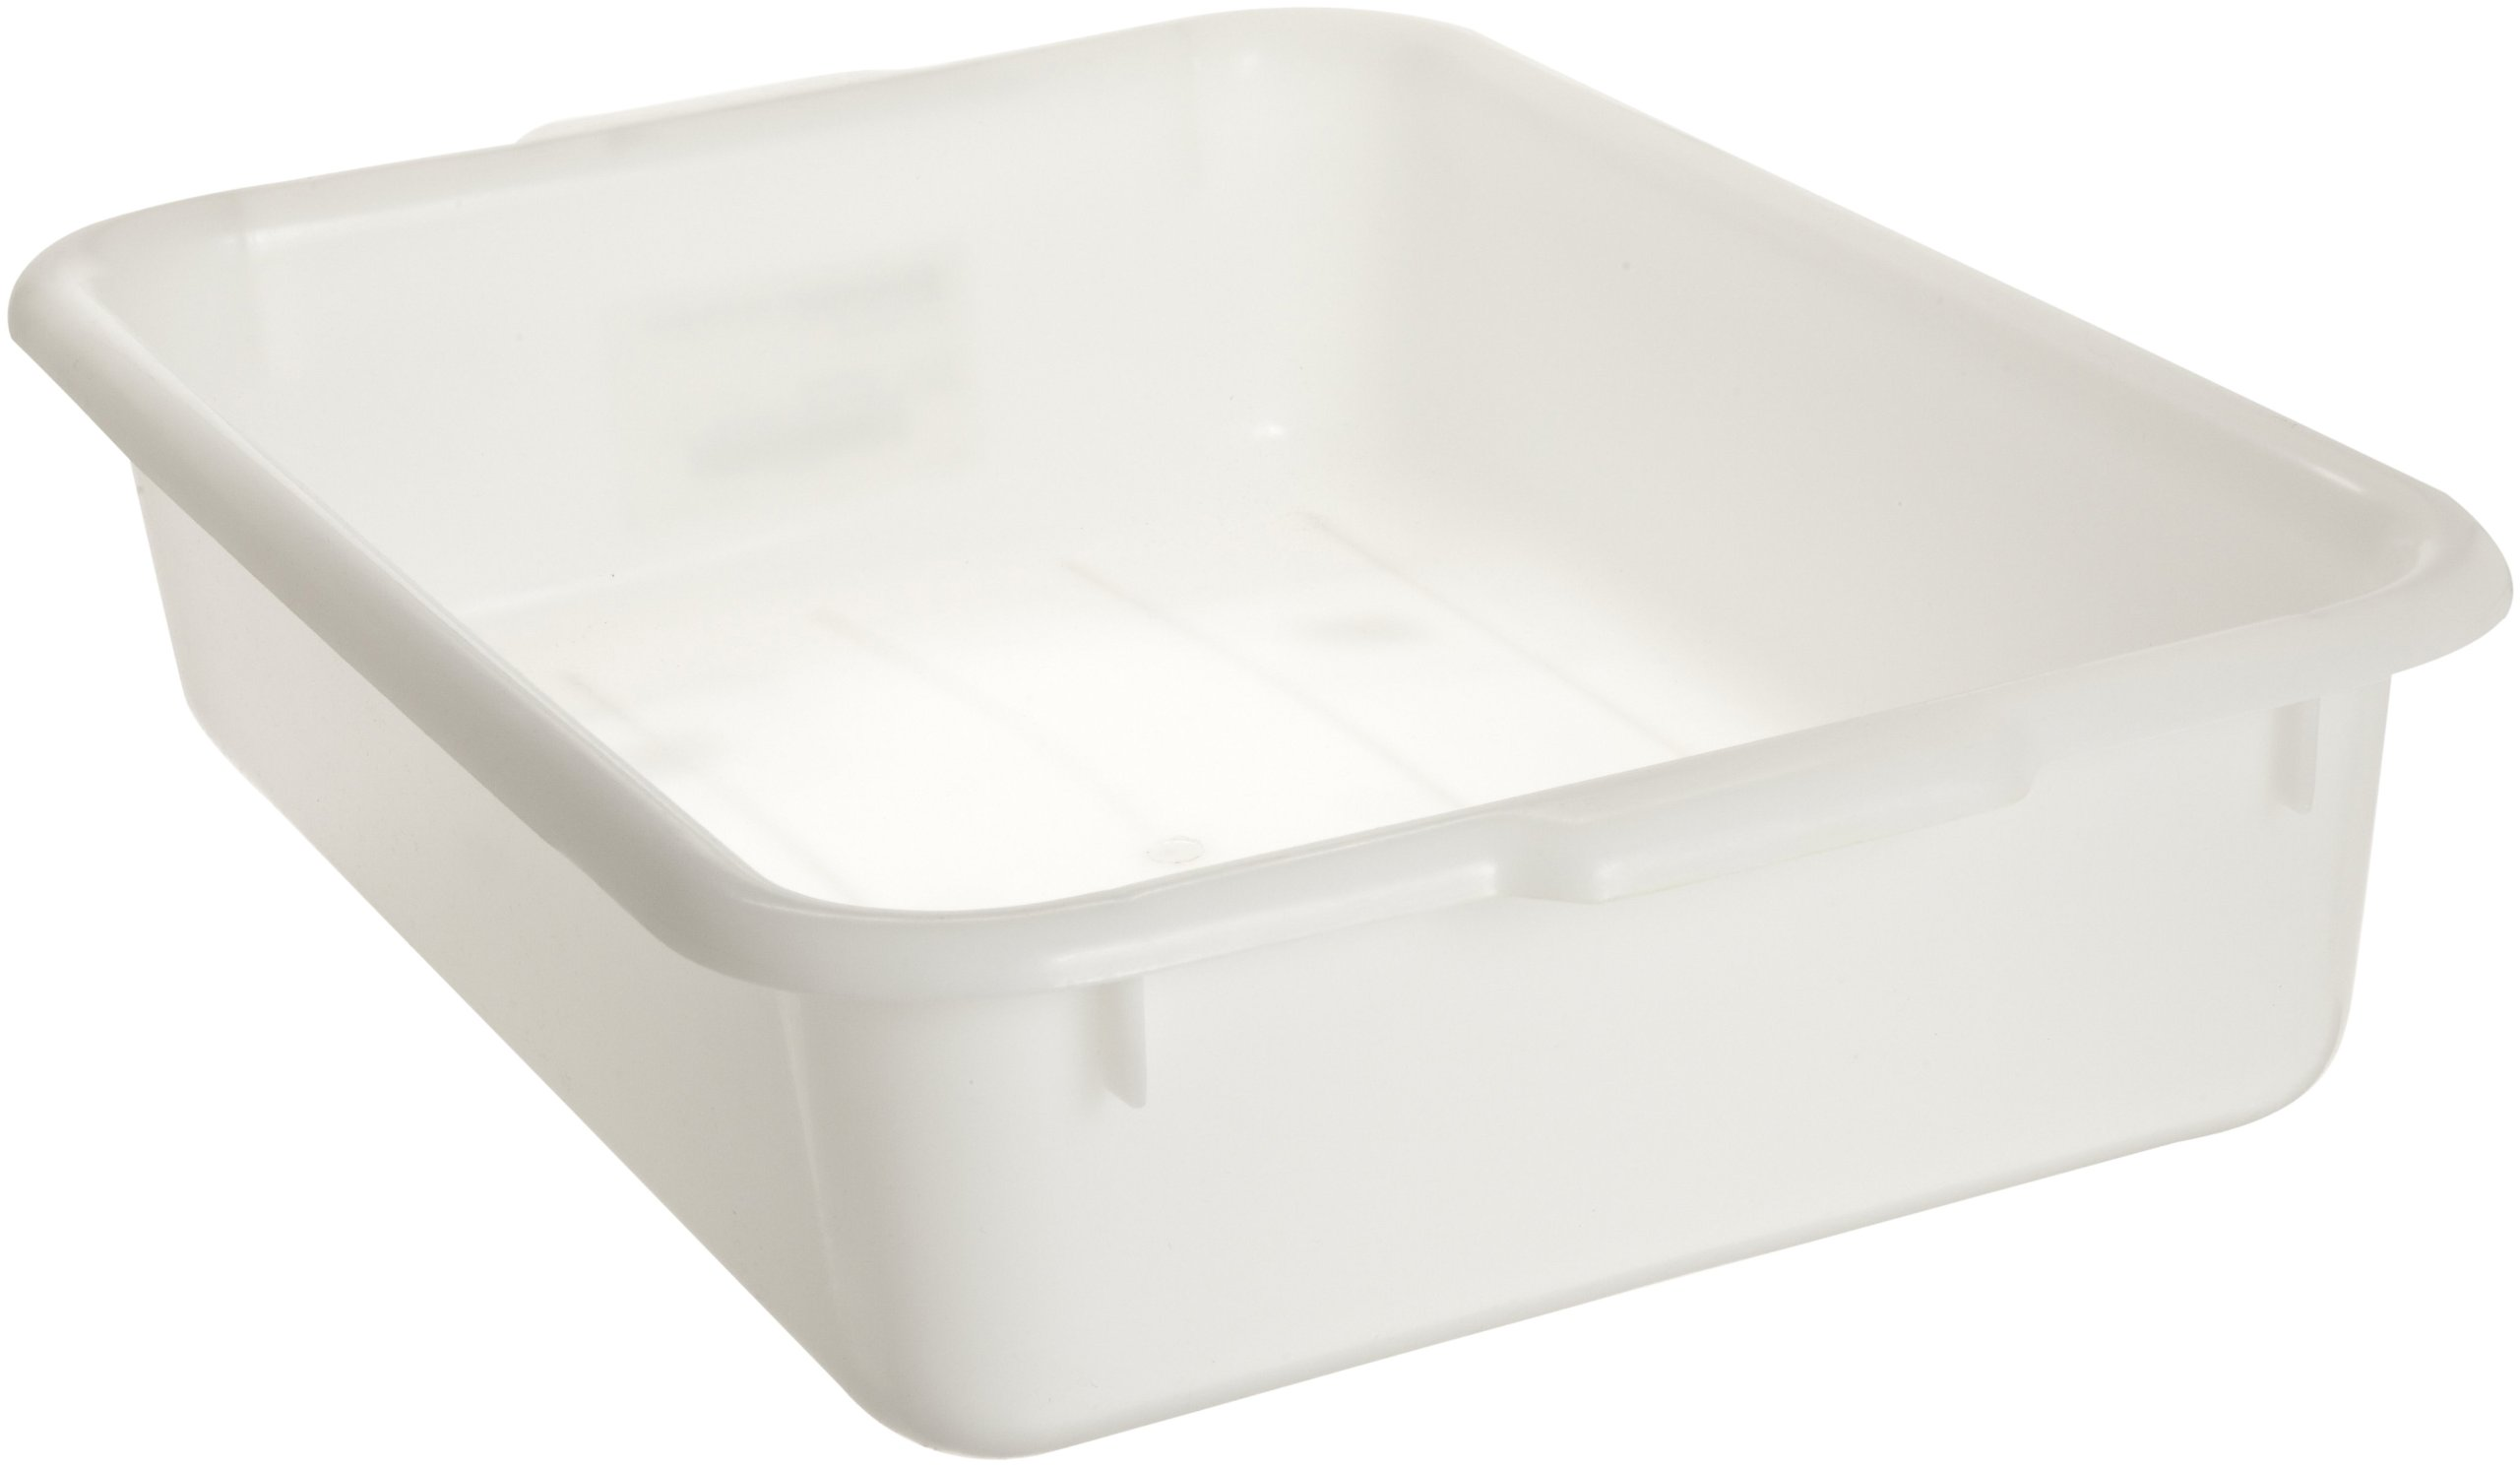 Bel-Art Polypropylene Sterilizing Tray; 21 x 15½ x 5 in. (H16264-0000) by SP Scienceware